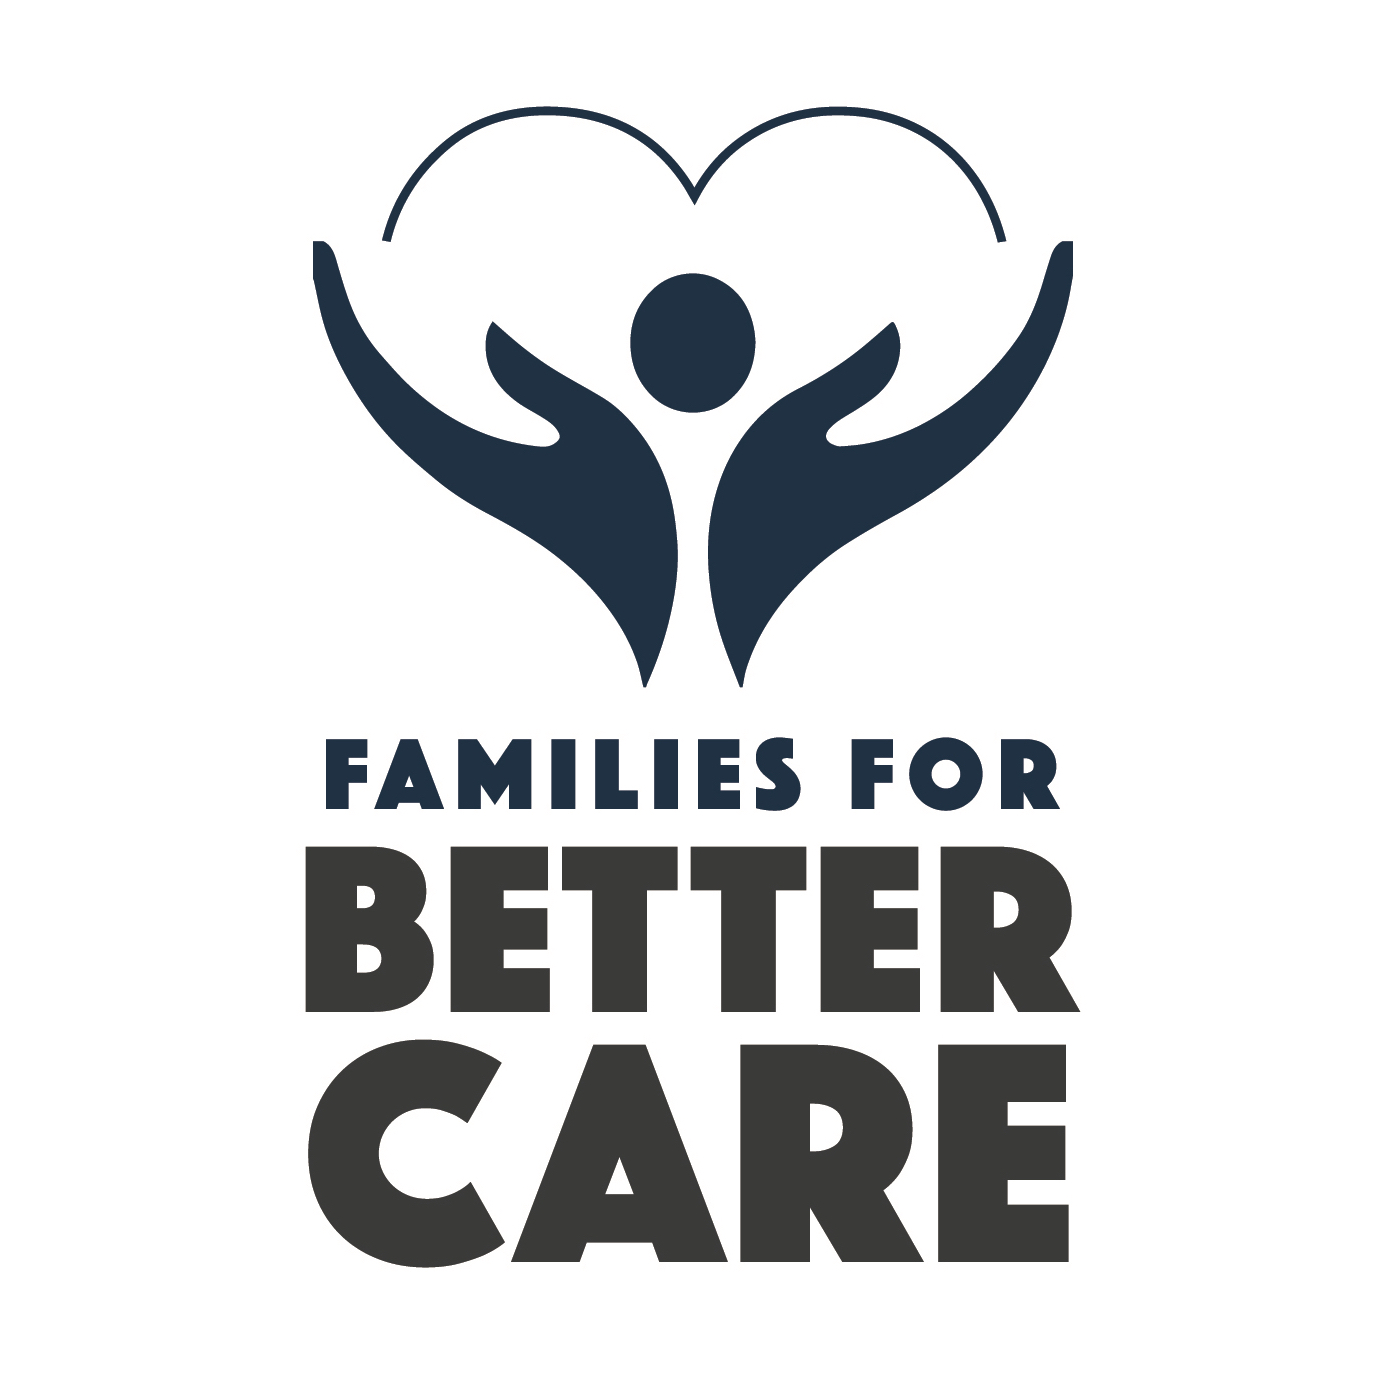 Families for Better Care Nursing Home Brian Lee Image